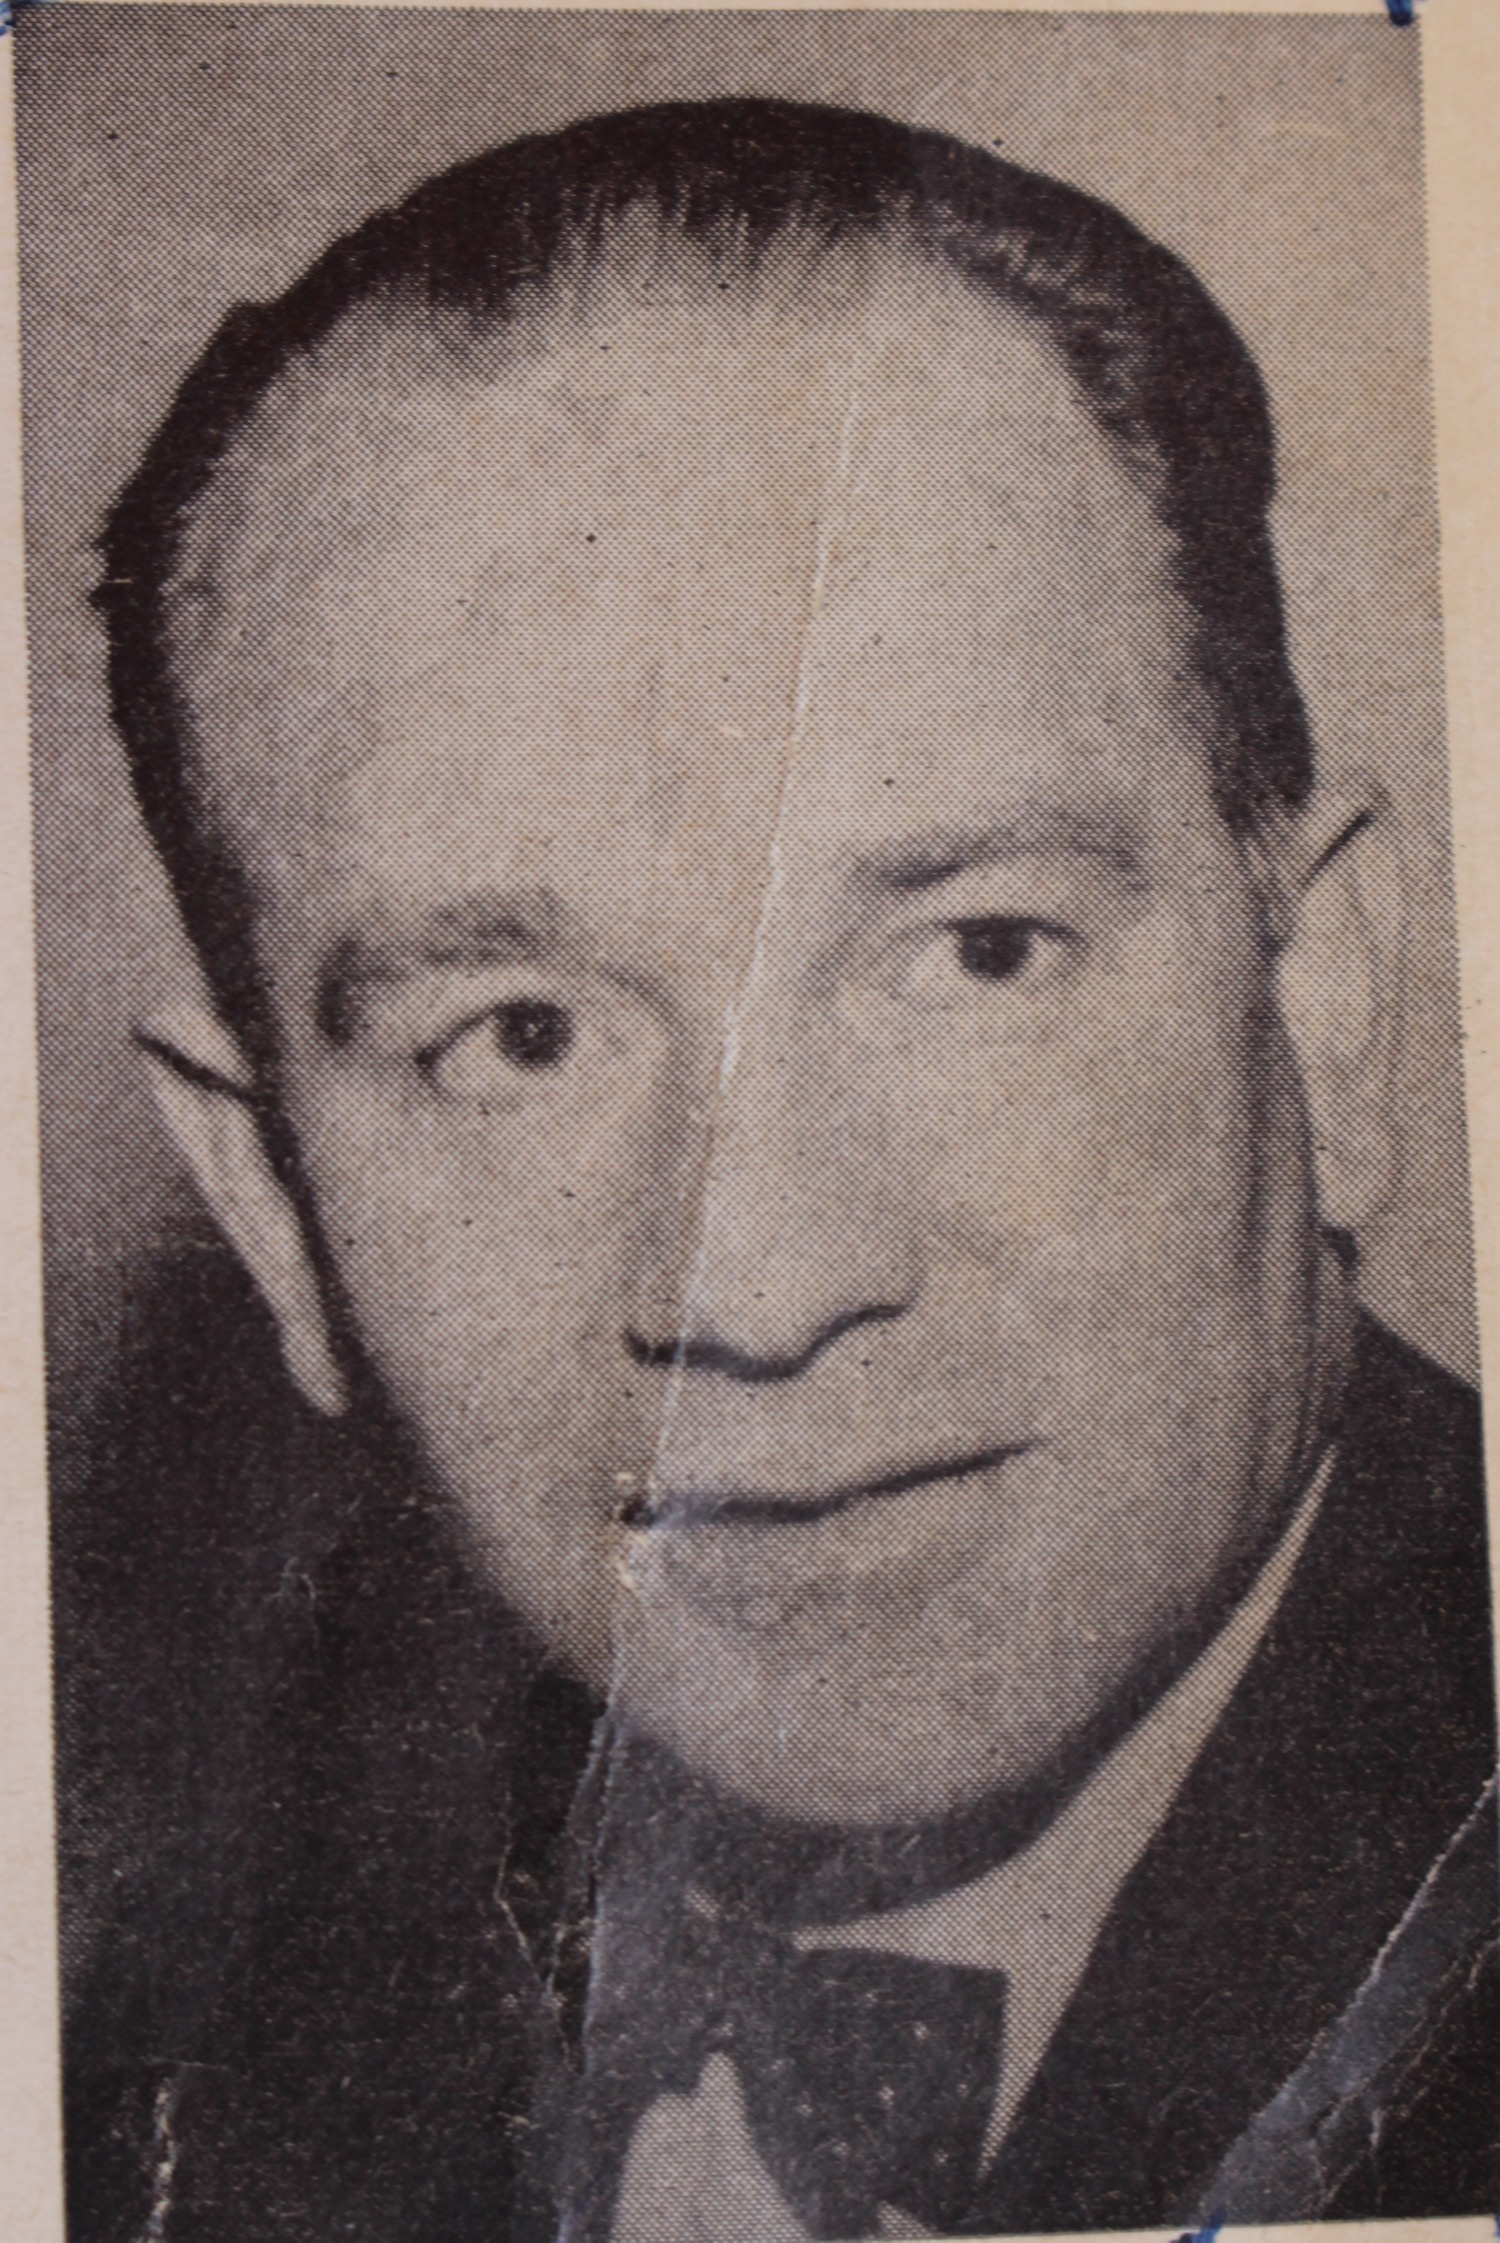 Wayne McClure photo from Parade Brochure